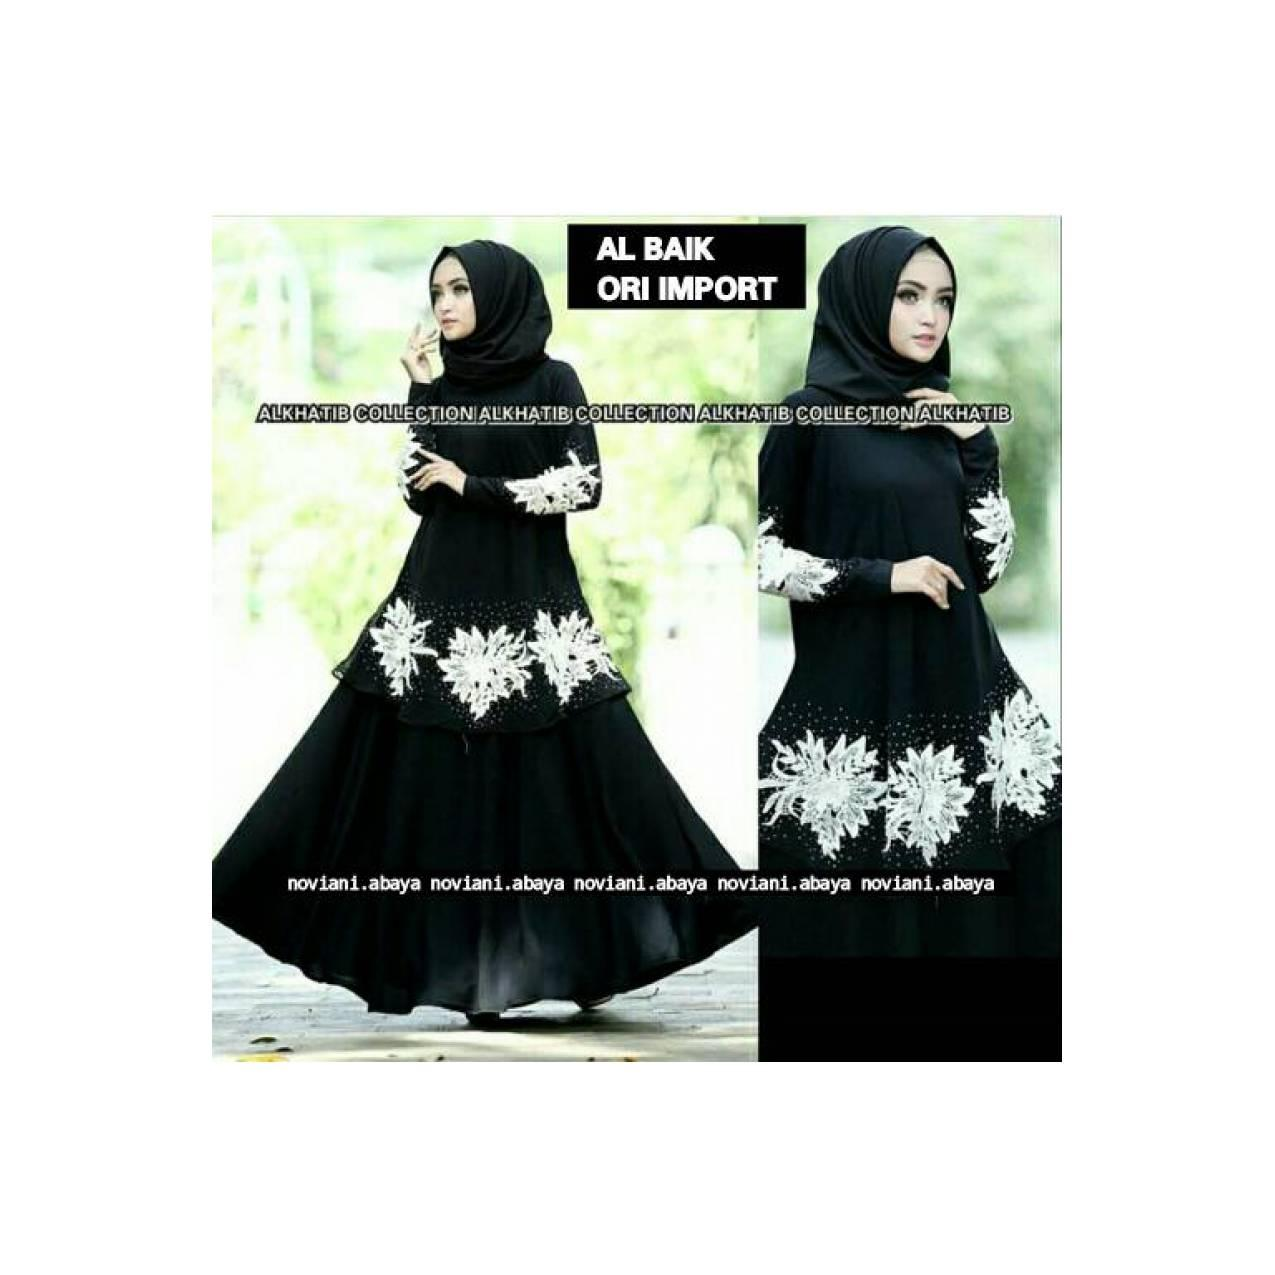 Abaya Al Baik Ori Import Saudi Alkhatib Collection